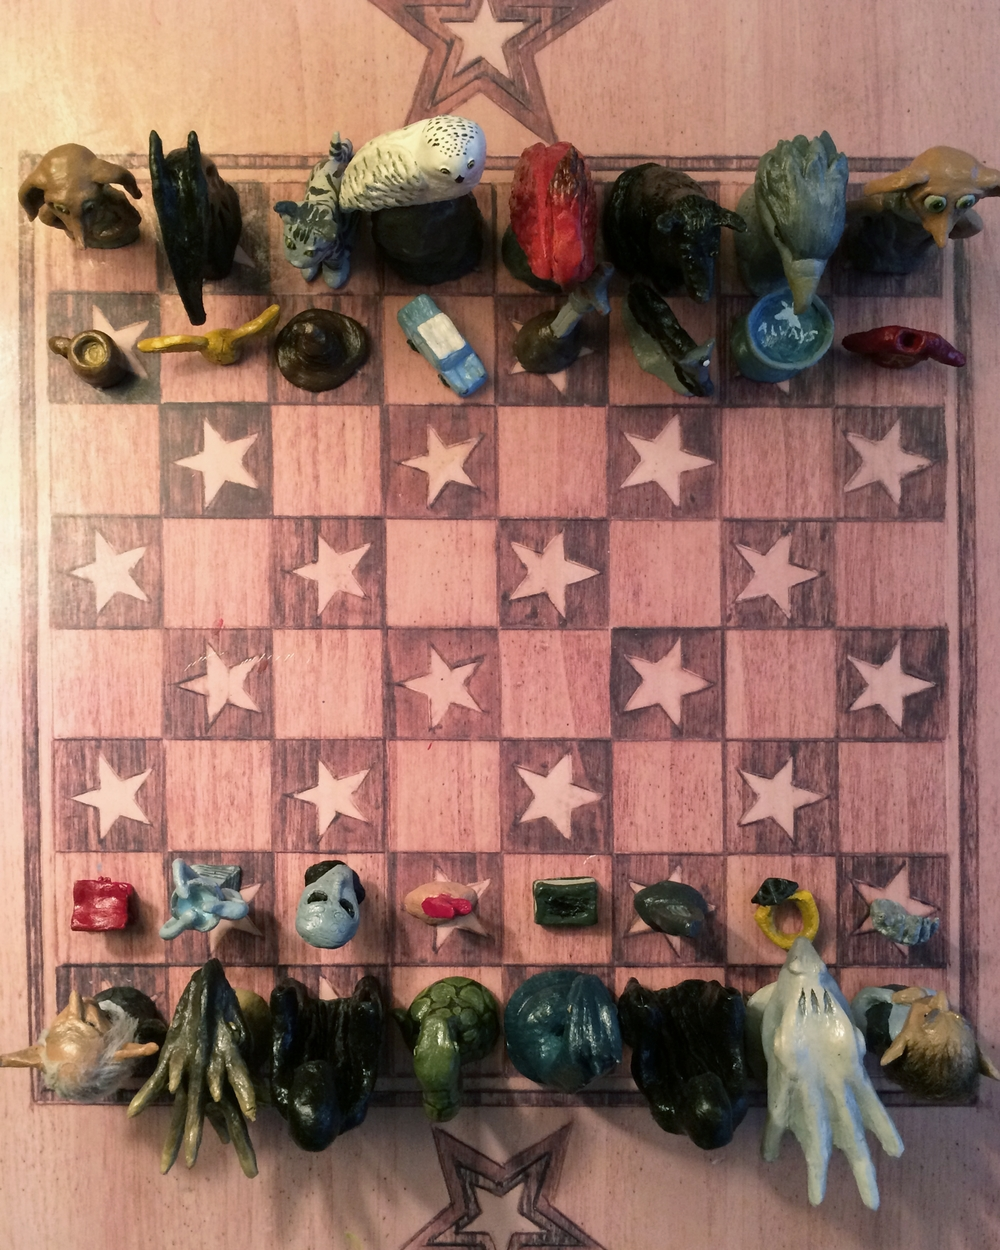 i designed a complete chess set based off nonhuman creatures and beings from the harry potter universe basing my designs of the depictions in the movies